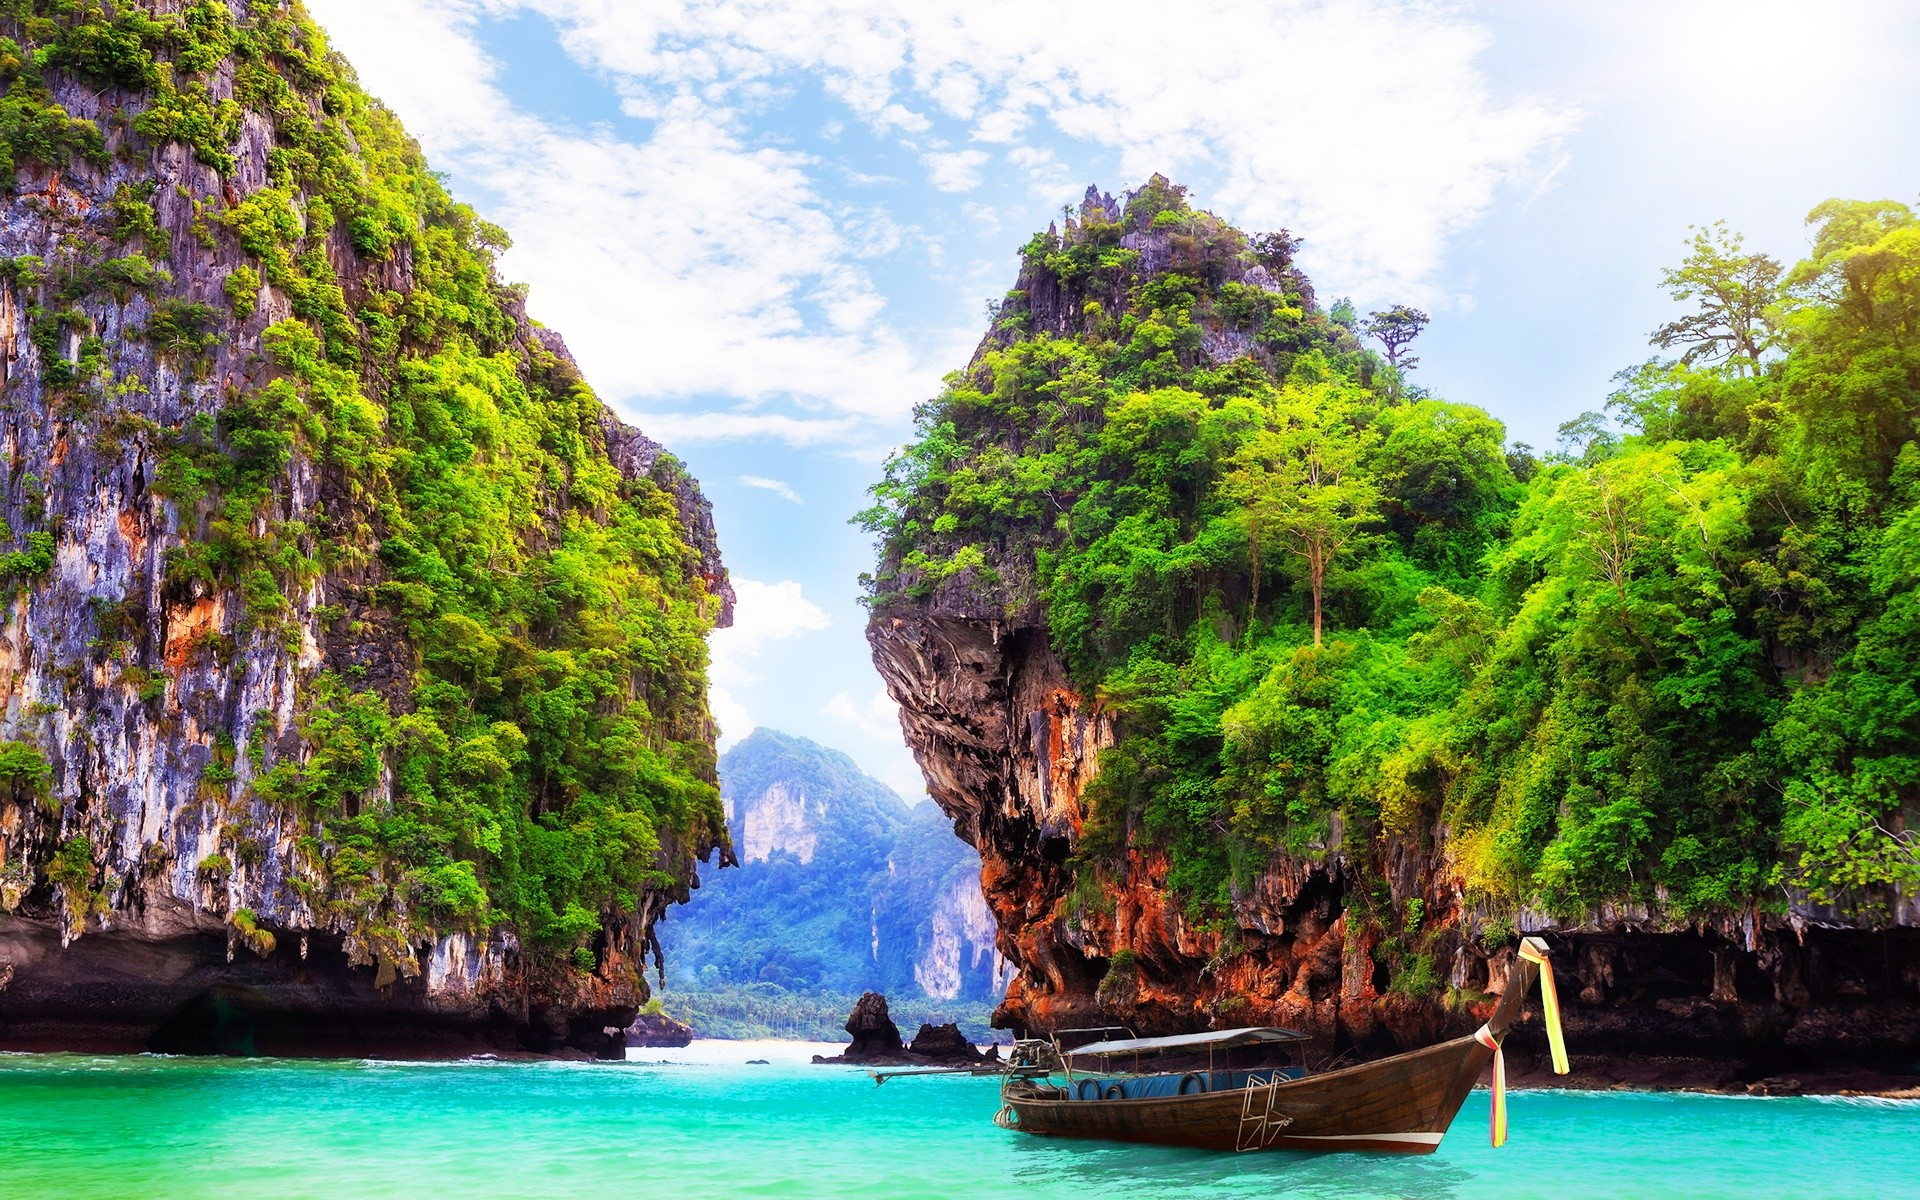 skypark holidays-Exciting Packages of Thailand   Best Thailand Tour Packages from Nepal